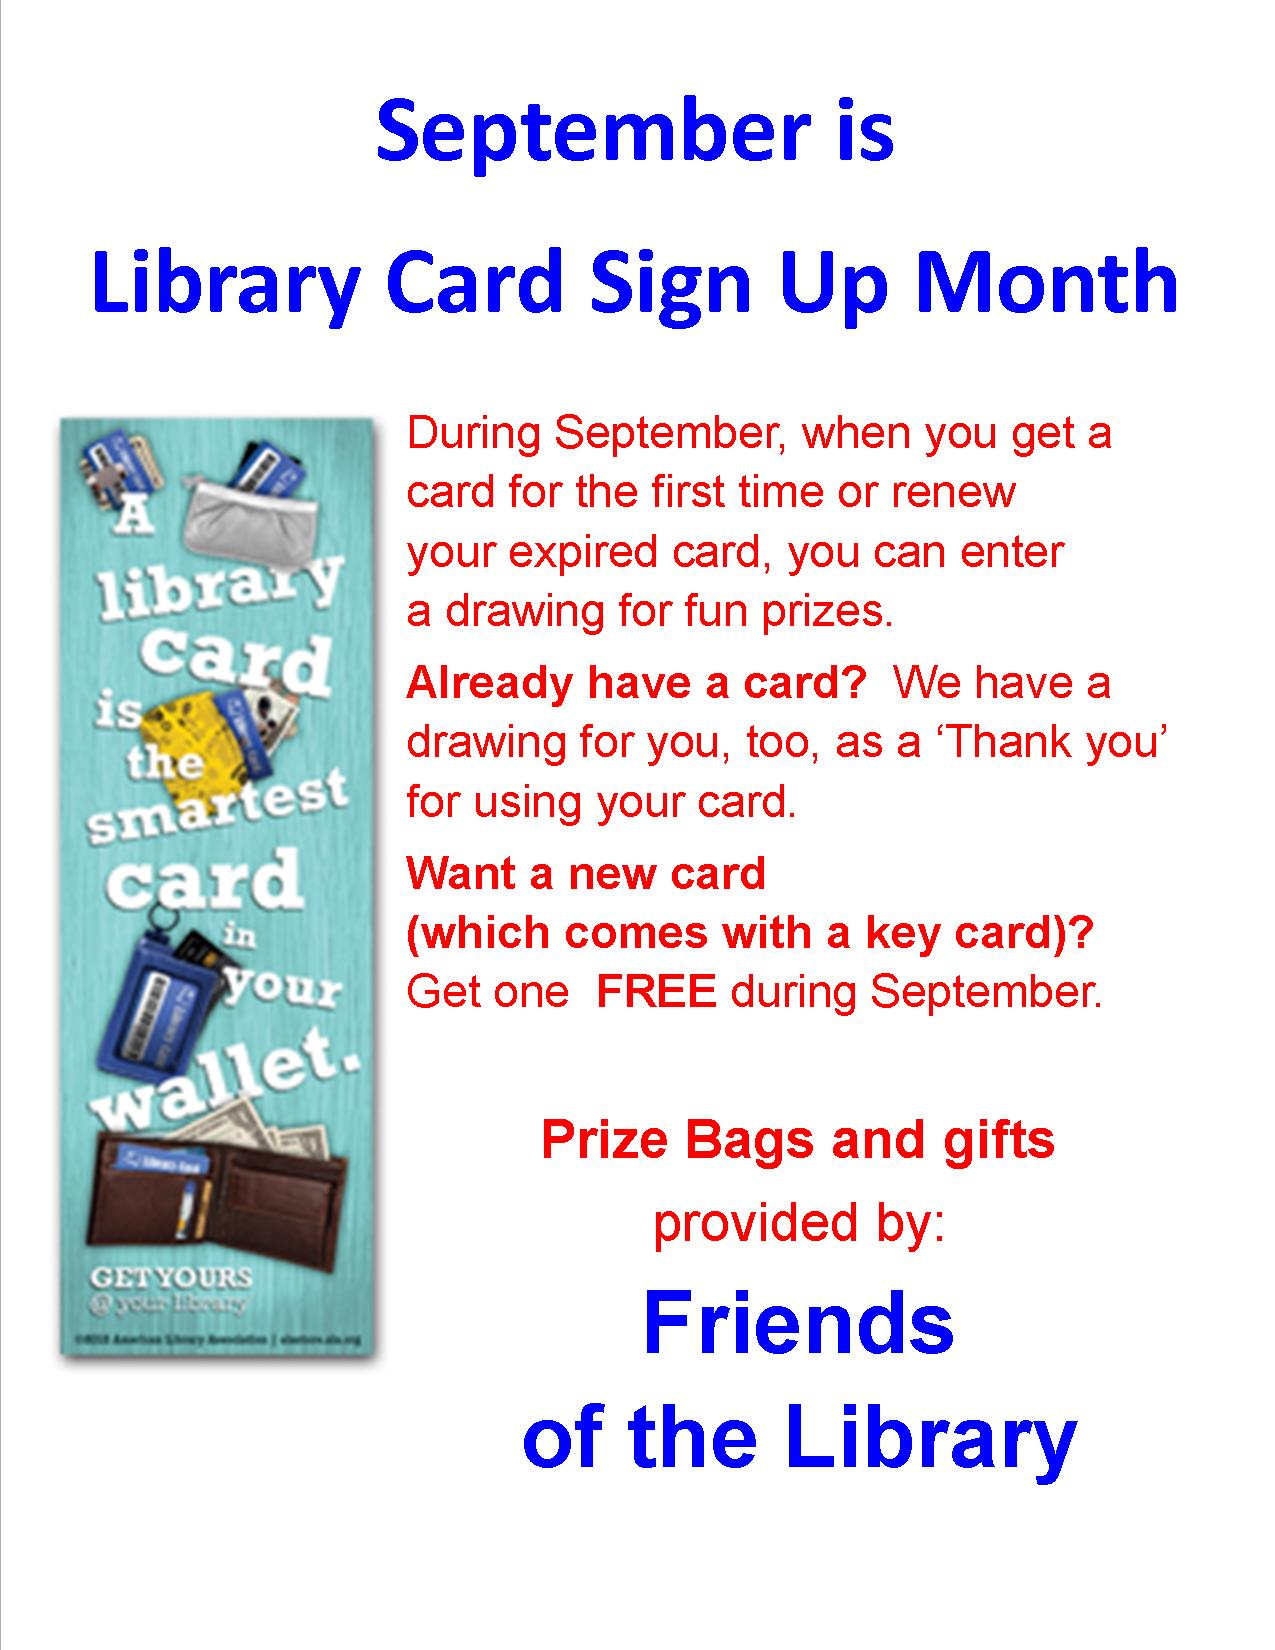 September 2017 Library Card sign up mpmth sign small.jpg